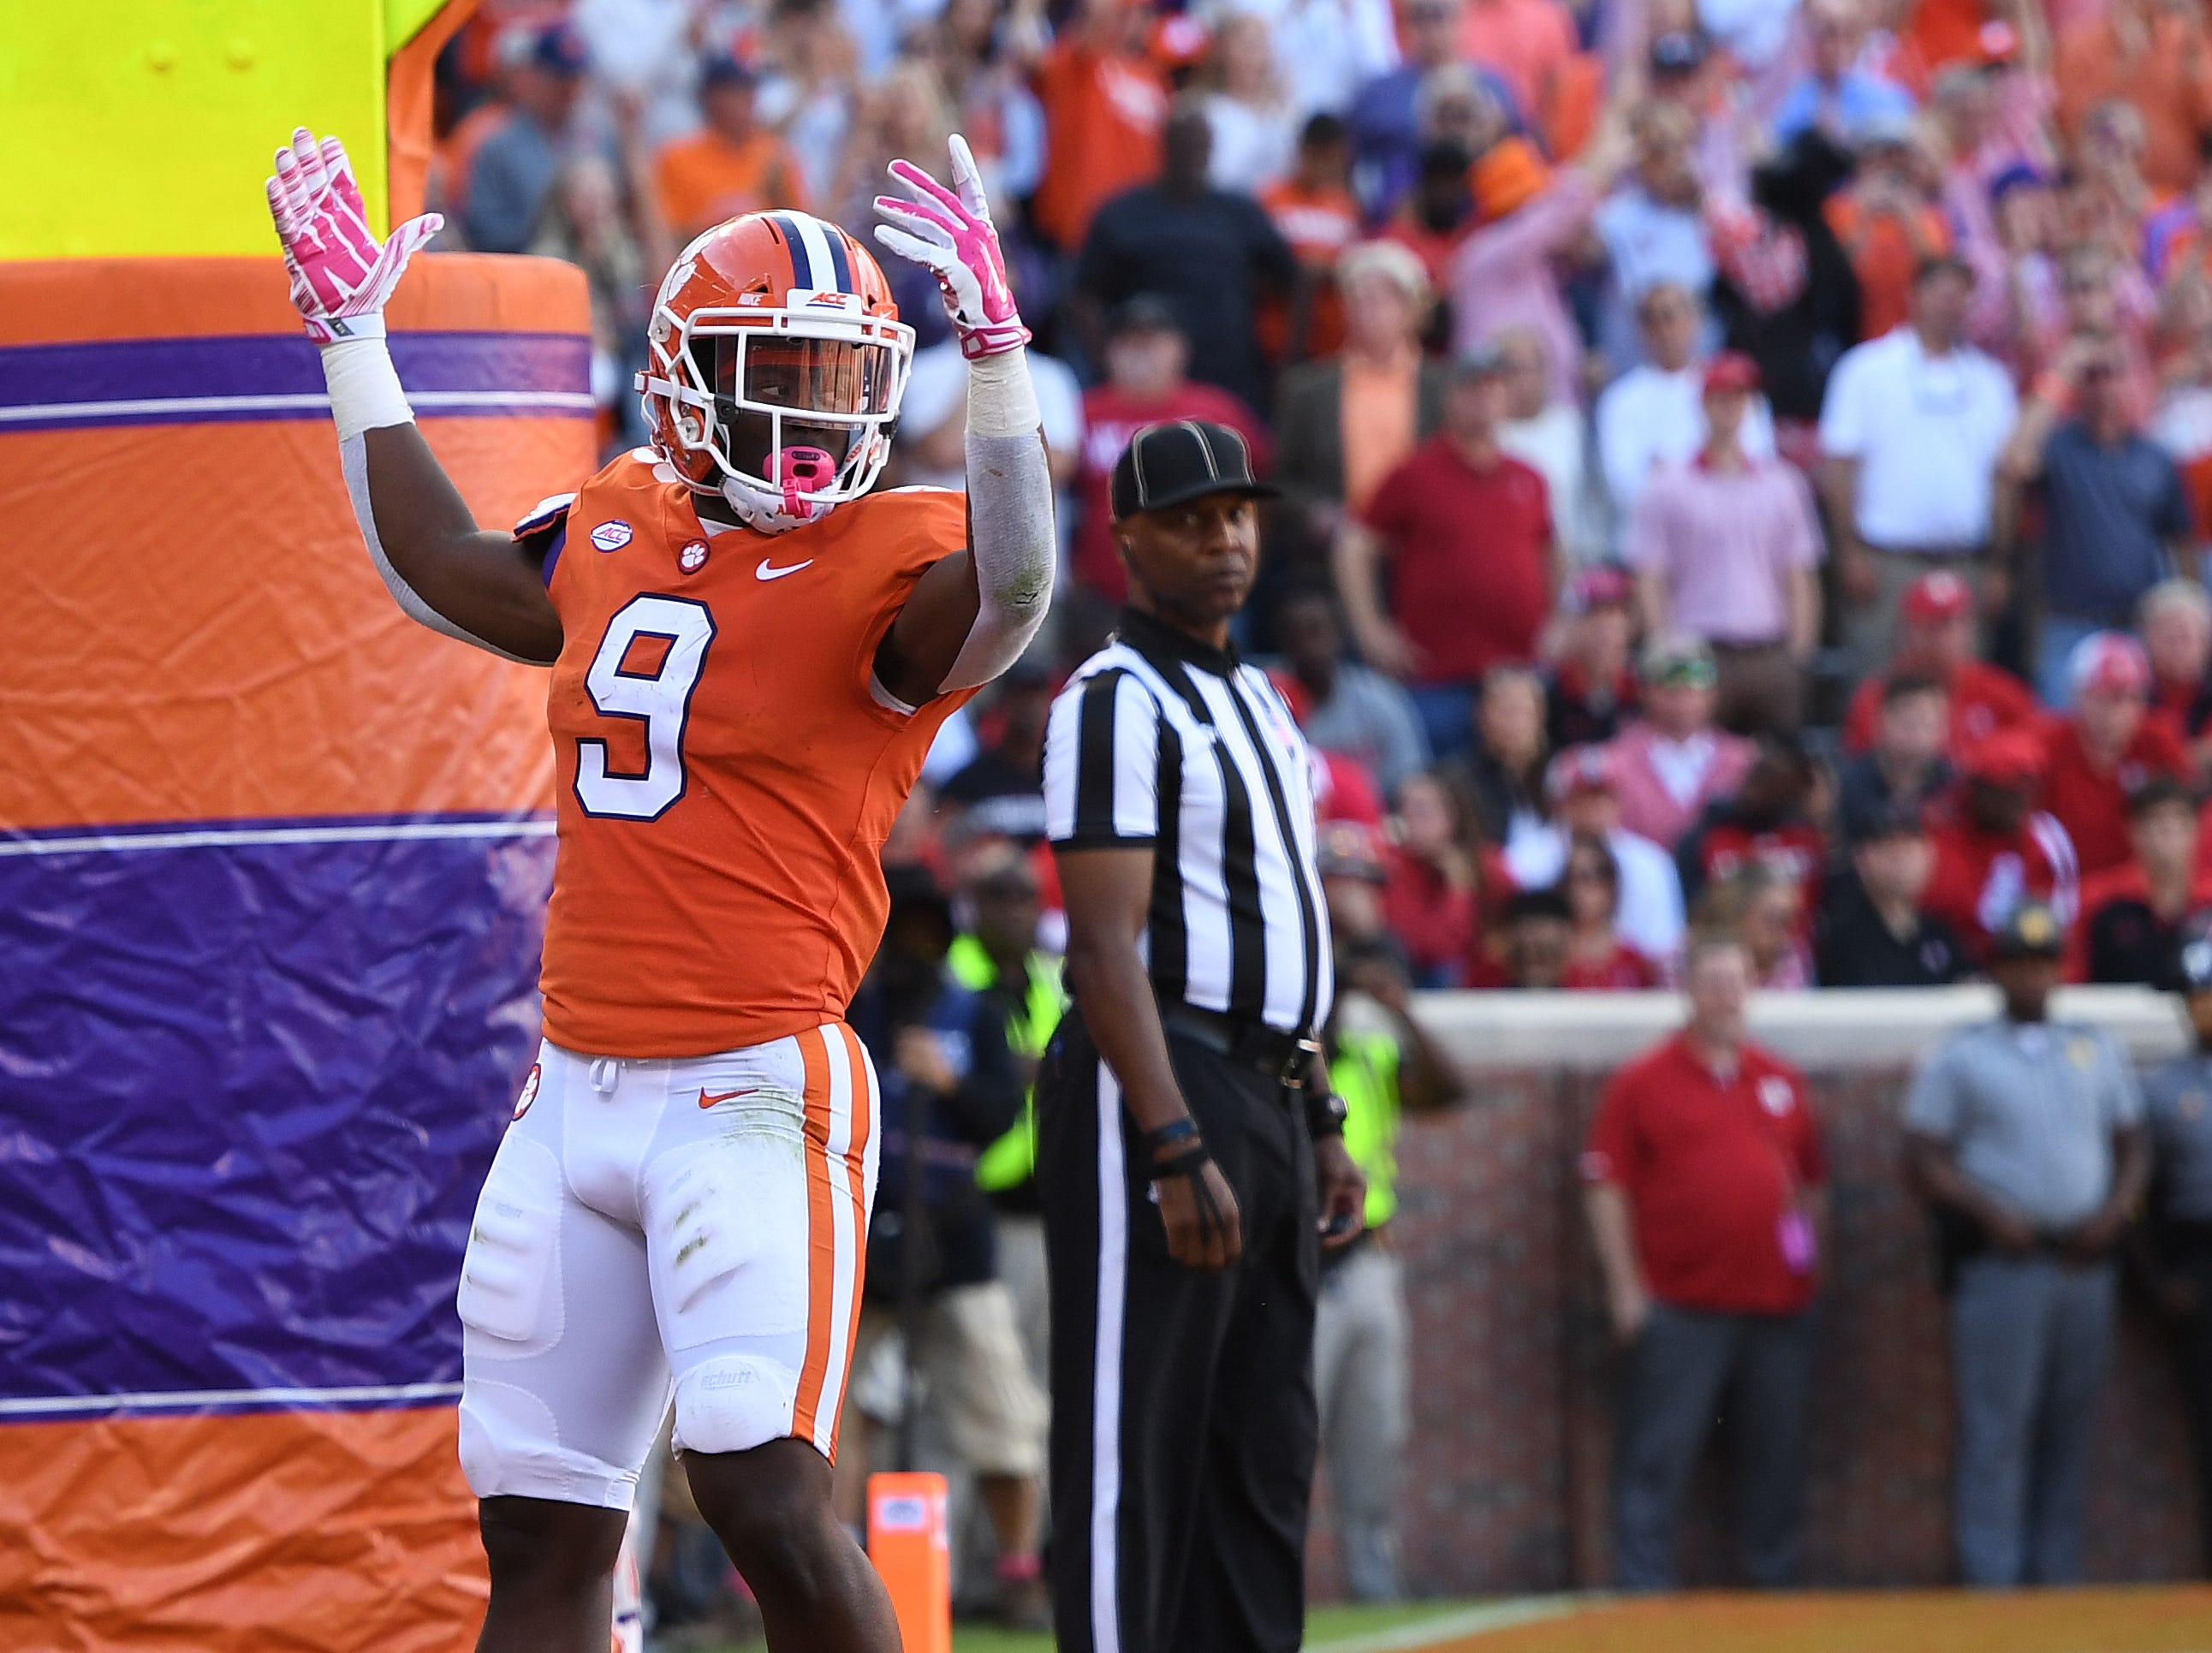 Clemson running back Travis Etienne (9) celebrates after scoring against NC State during the 2nd quarter Saturday, October 20, 2018 at Clemson's Memorial Stadium.